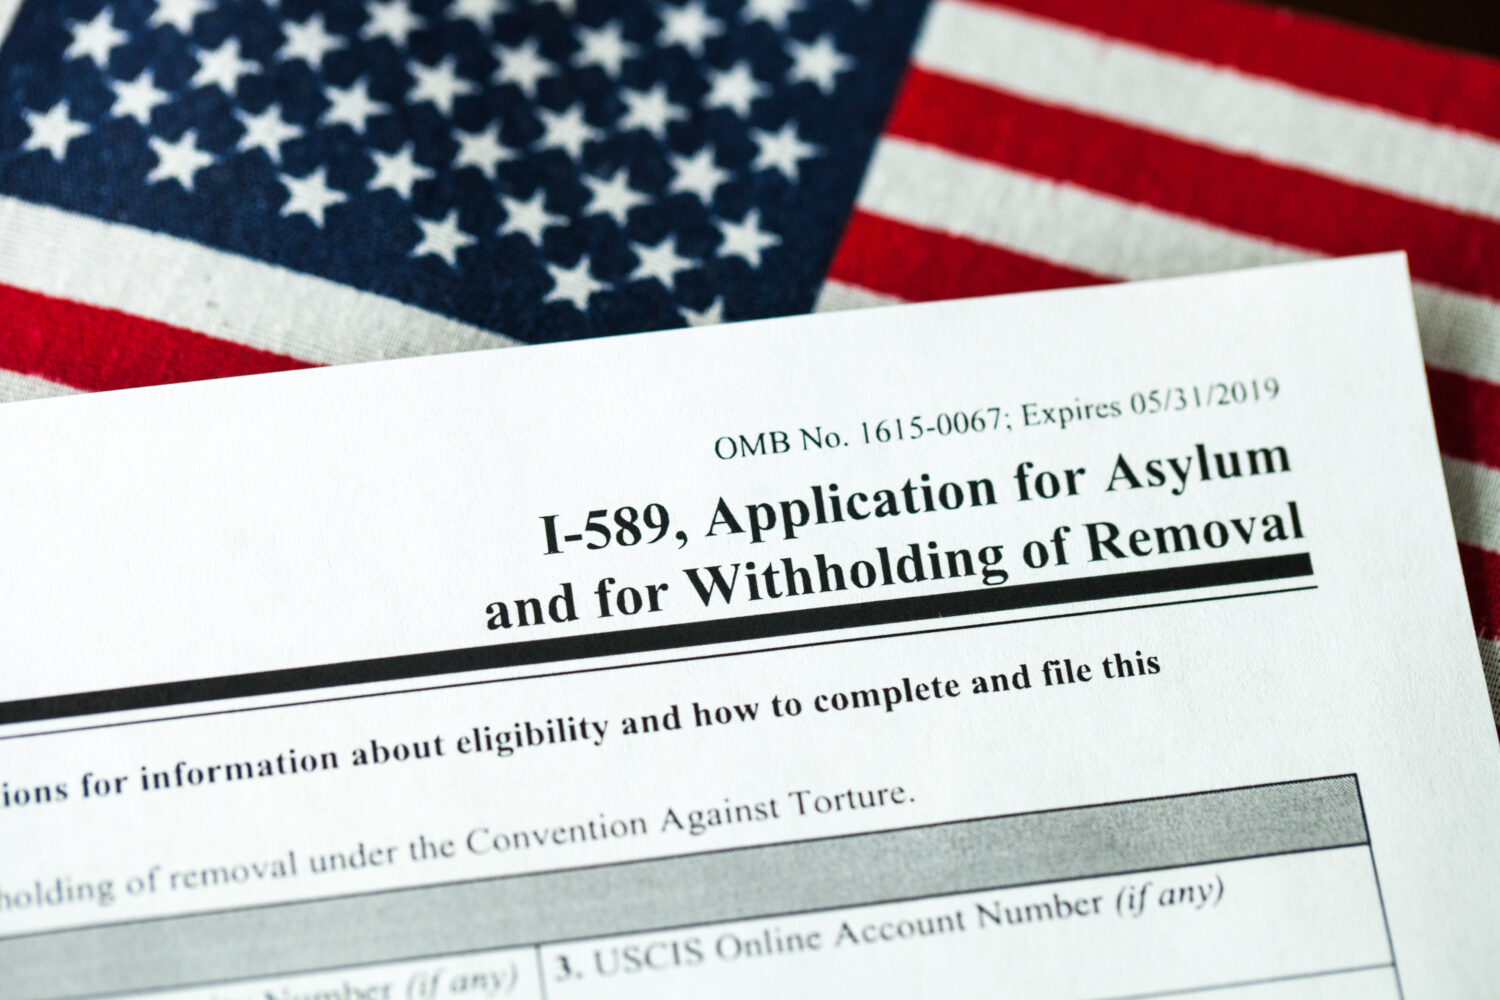 U.S. application for asylum